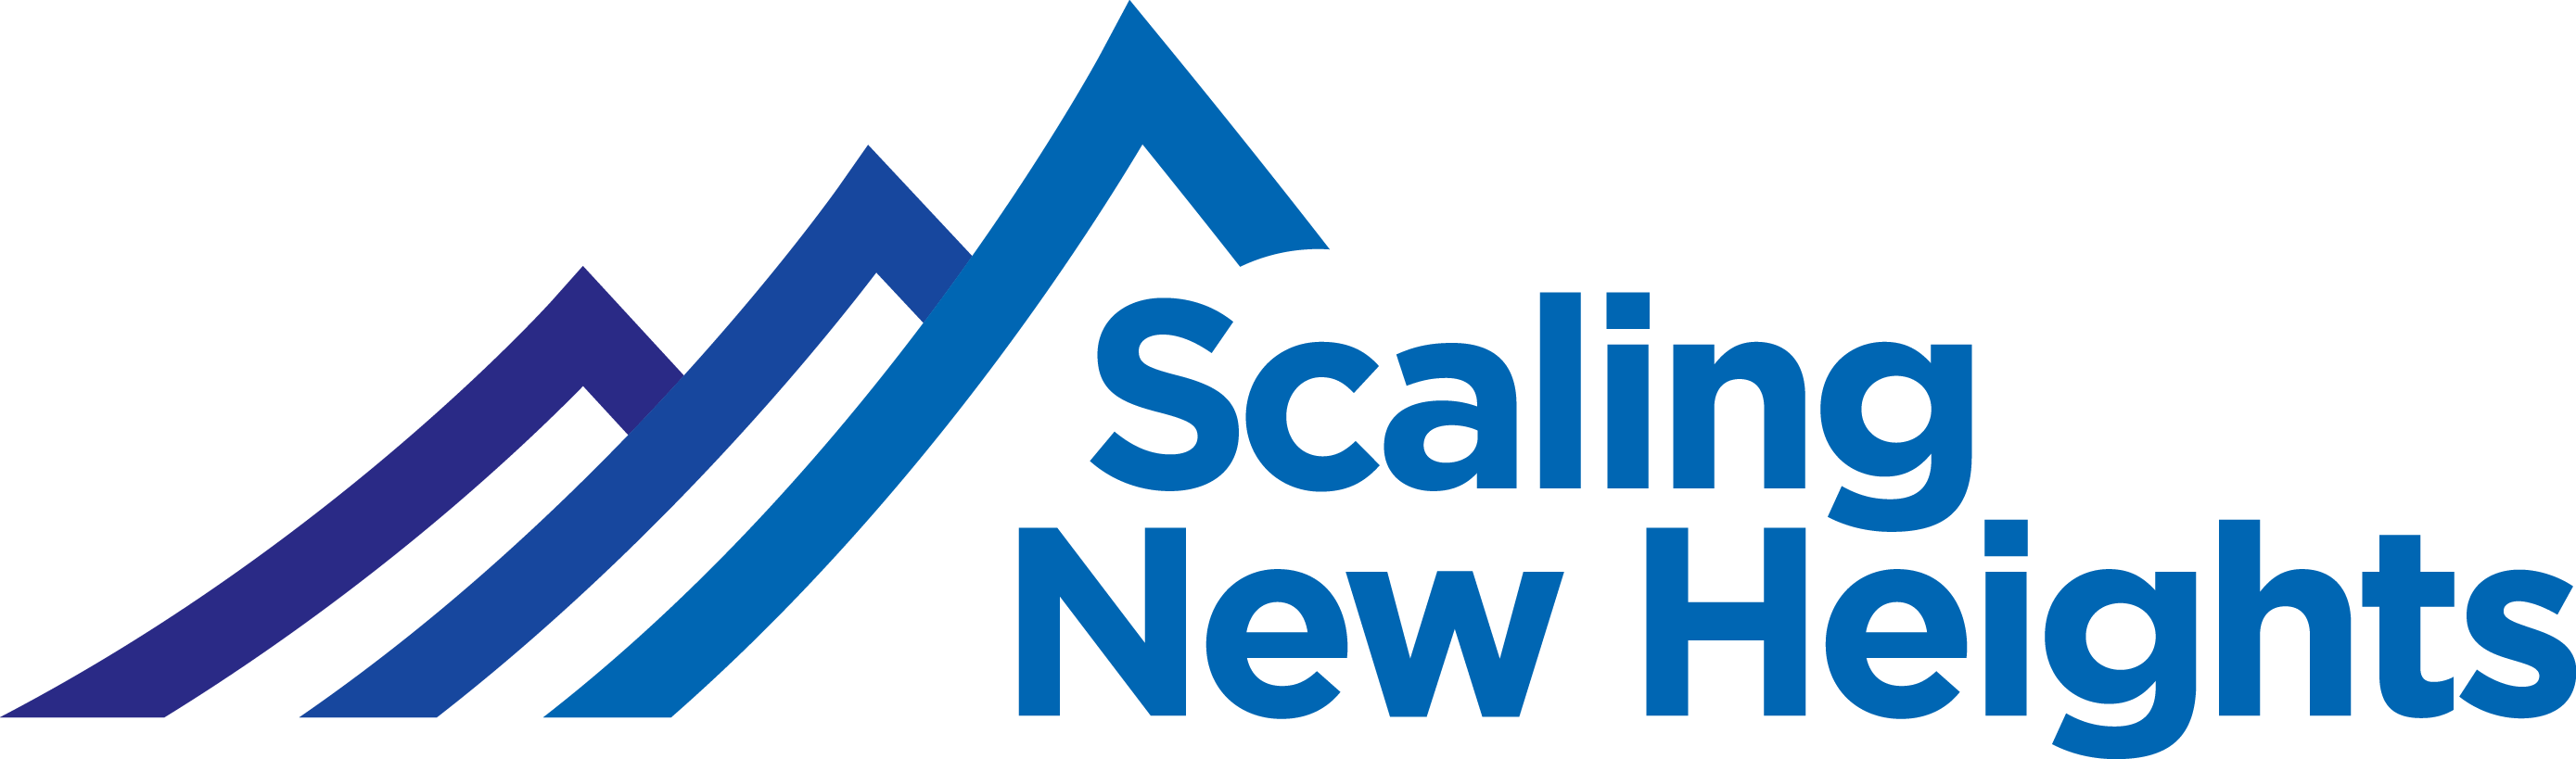 SCALING NEW HEIGHTS 2014 - Early Registration Now Open